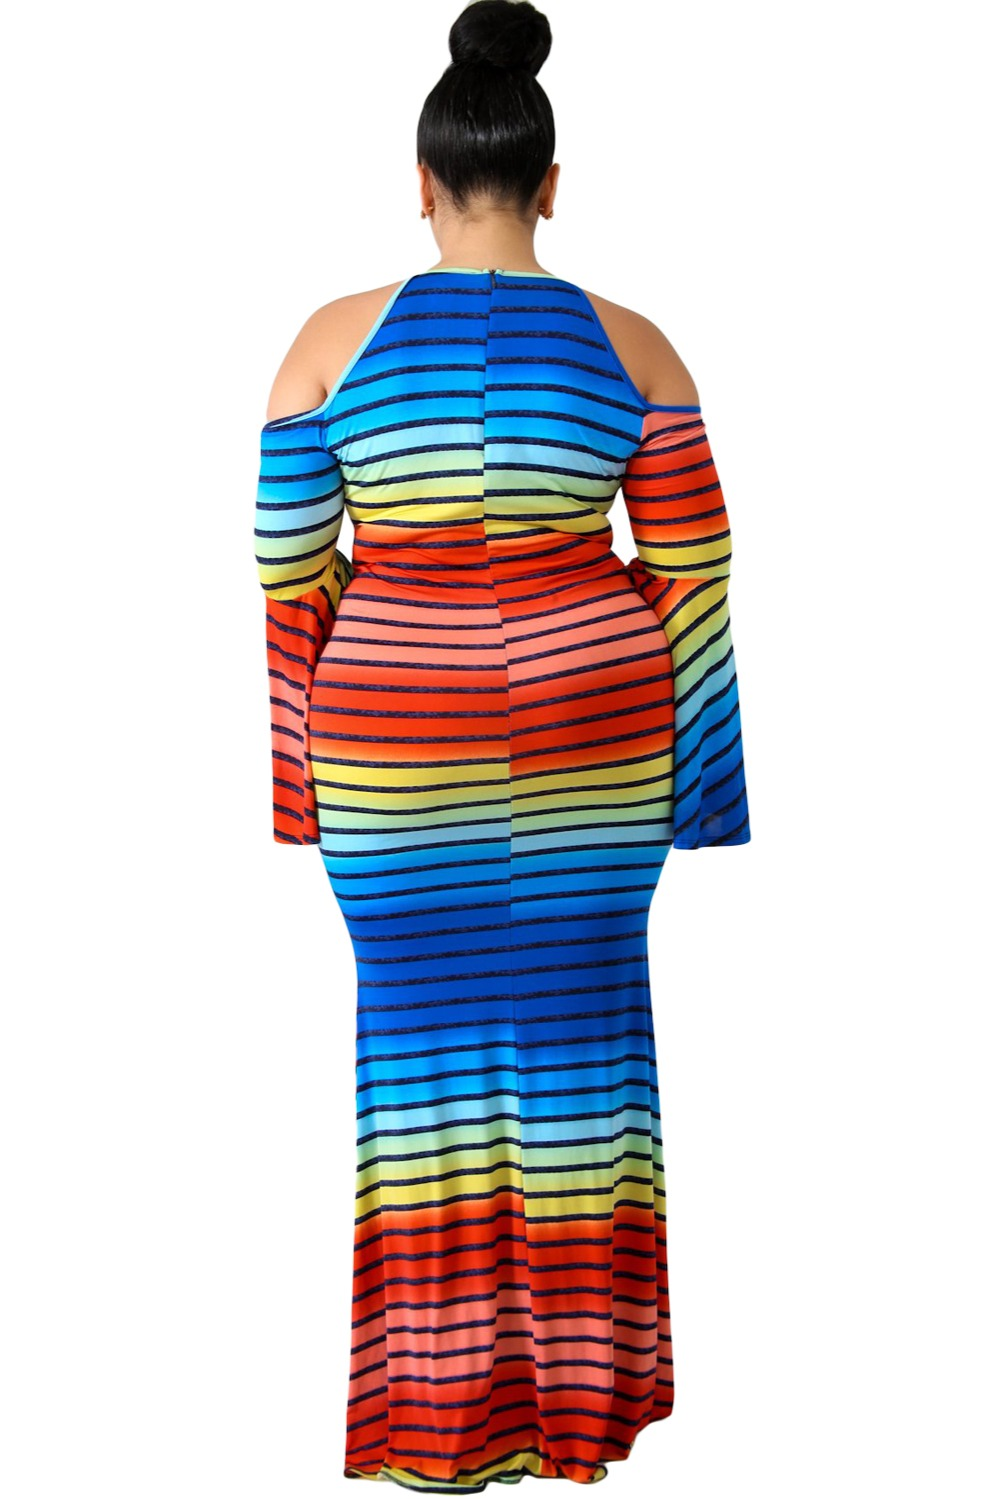 ... Rainbow-Striped-Cold-Shoulder-Plus-Size-Dress-LC610421-. coupon. 3.  WOMEN TOP 37c6bf8346a0